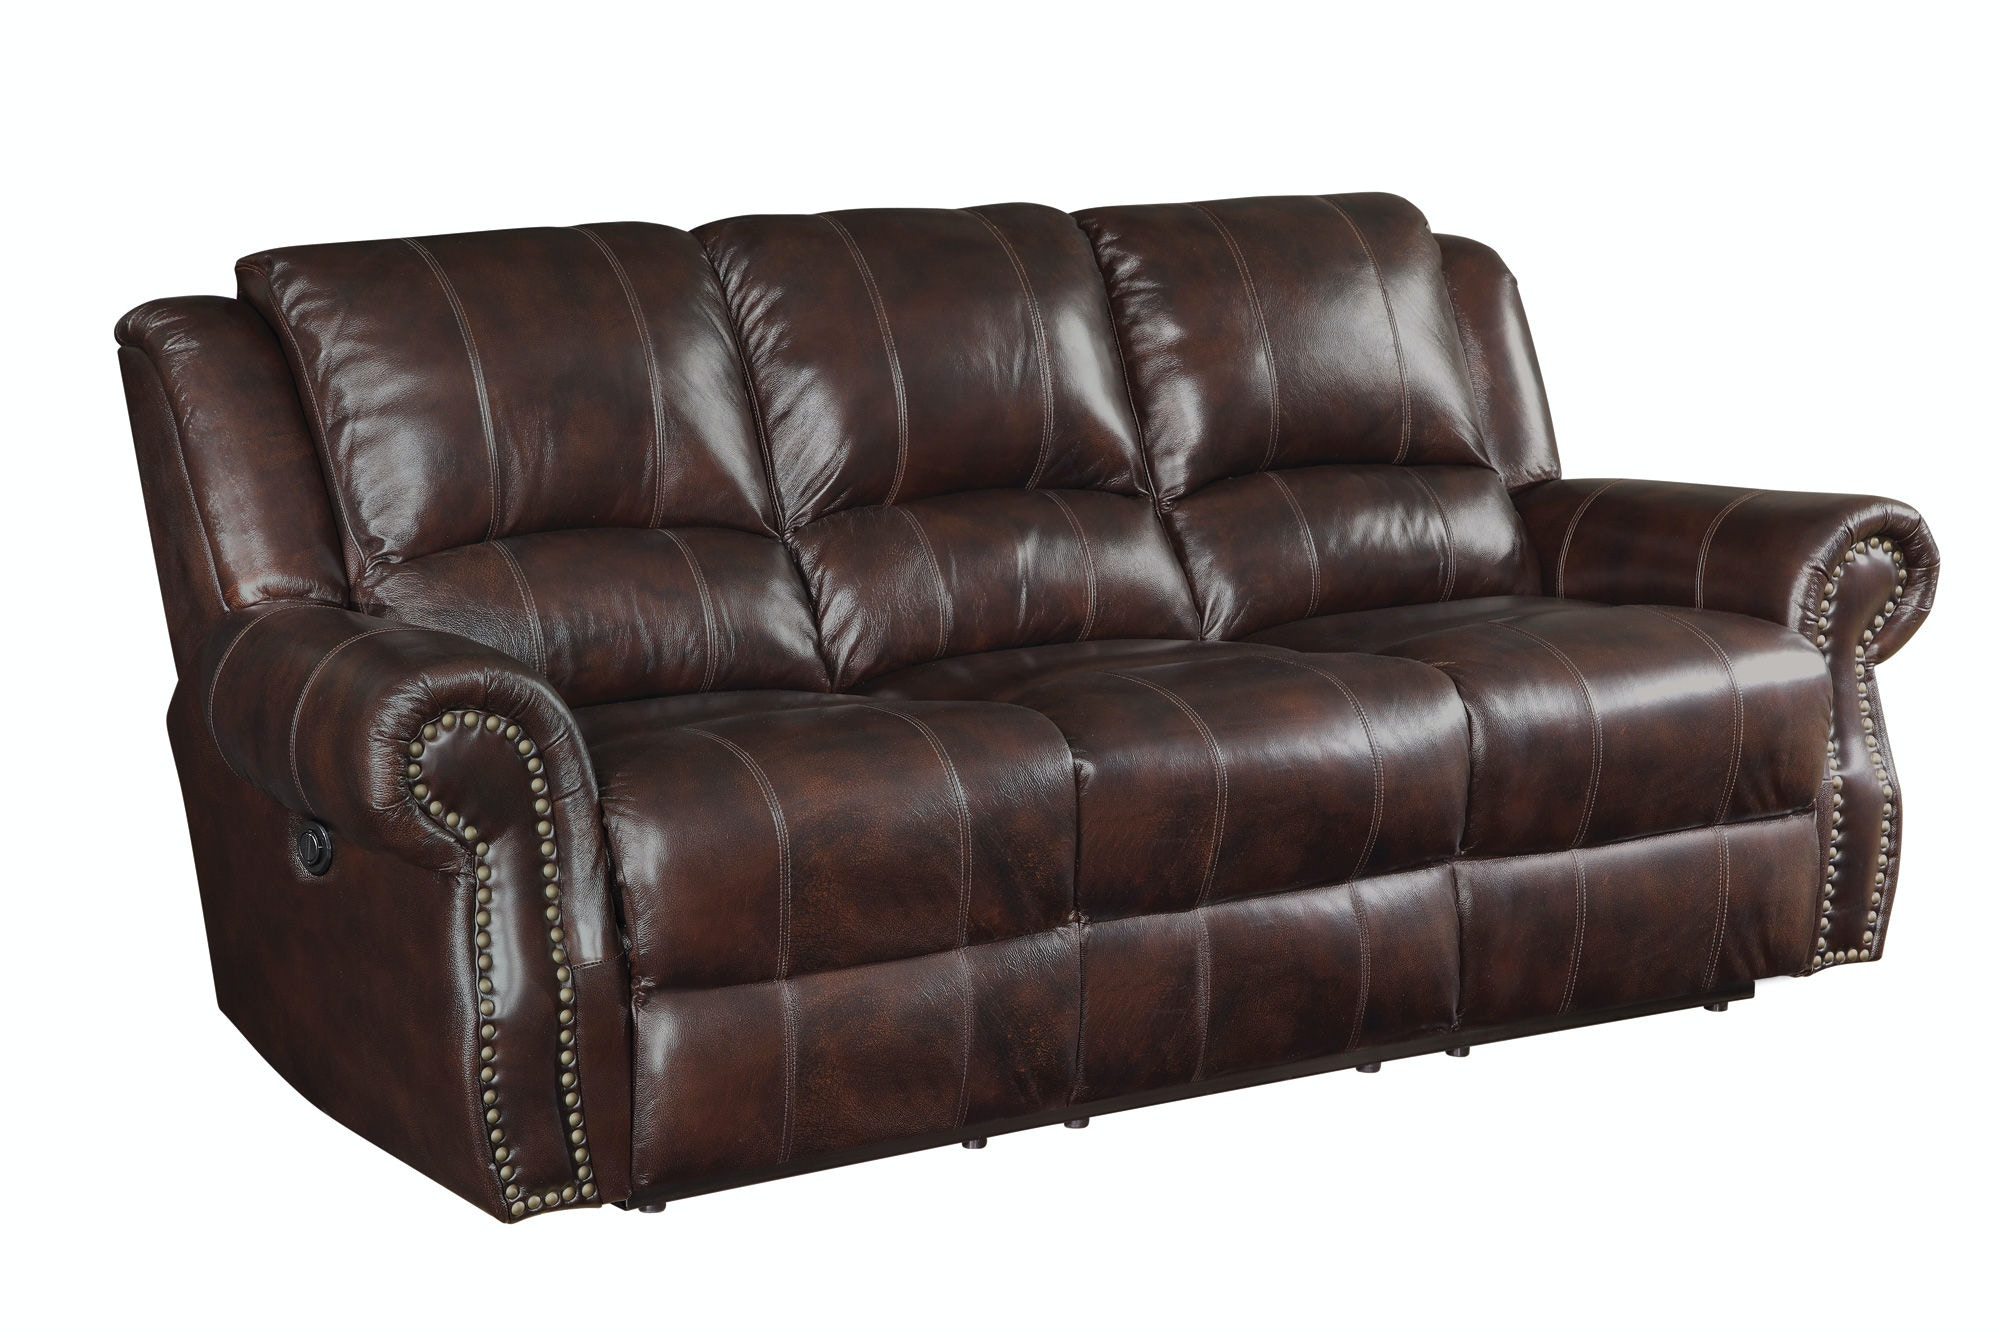 ron fiore century furniture. plain fiore furniture coaster motion sofa 650161 with concept design ron century